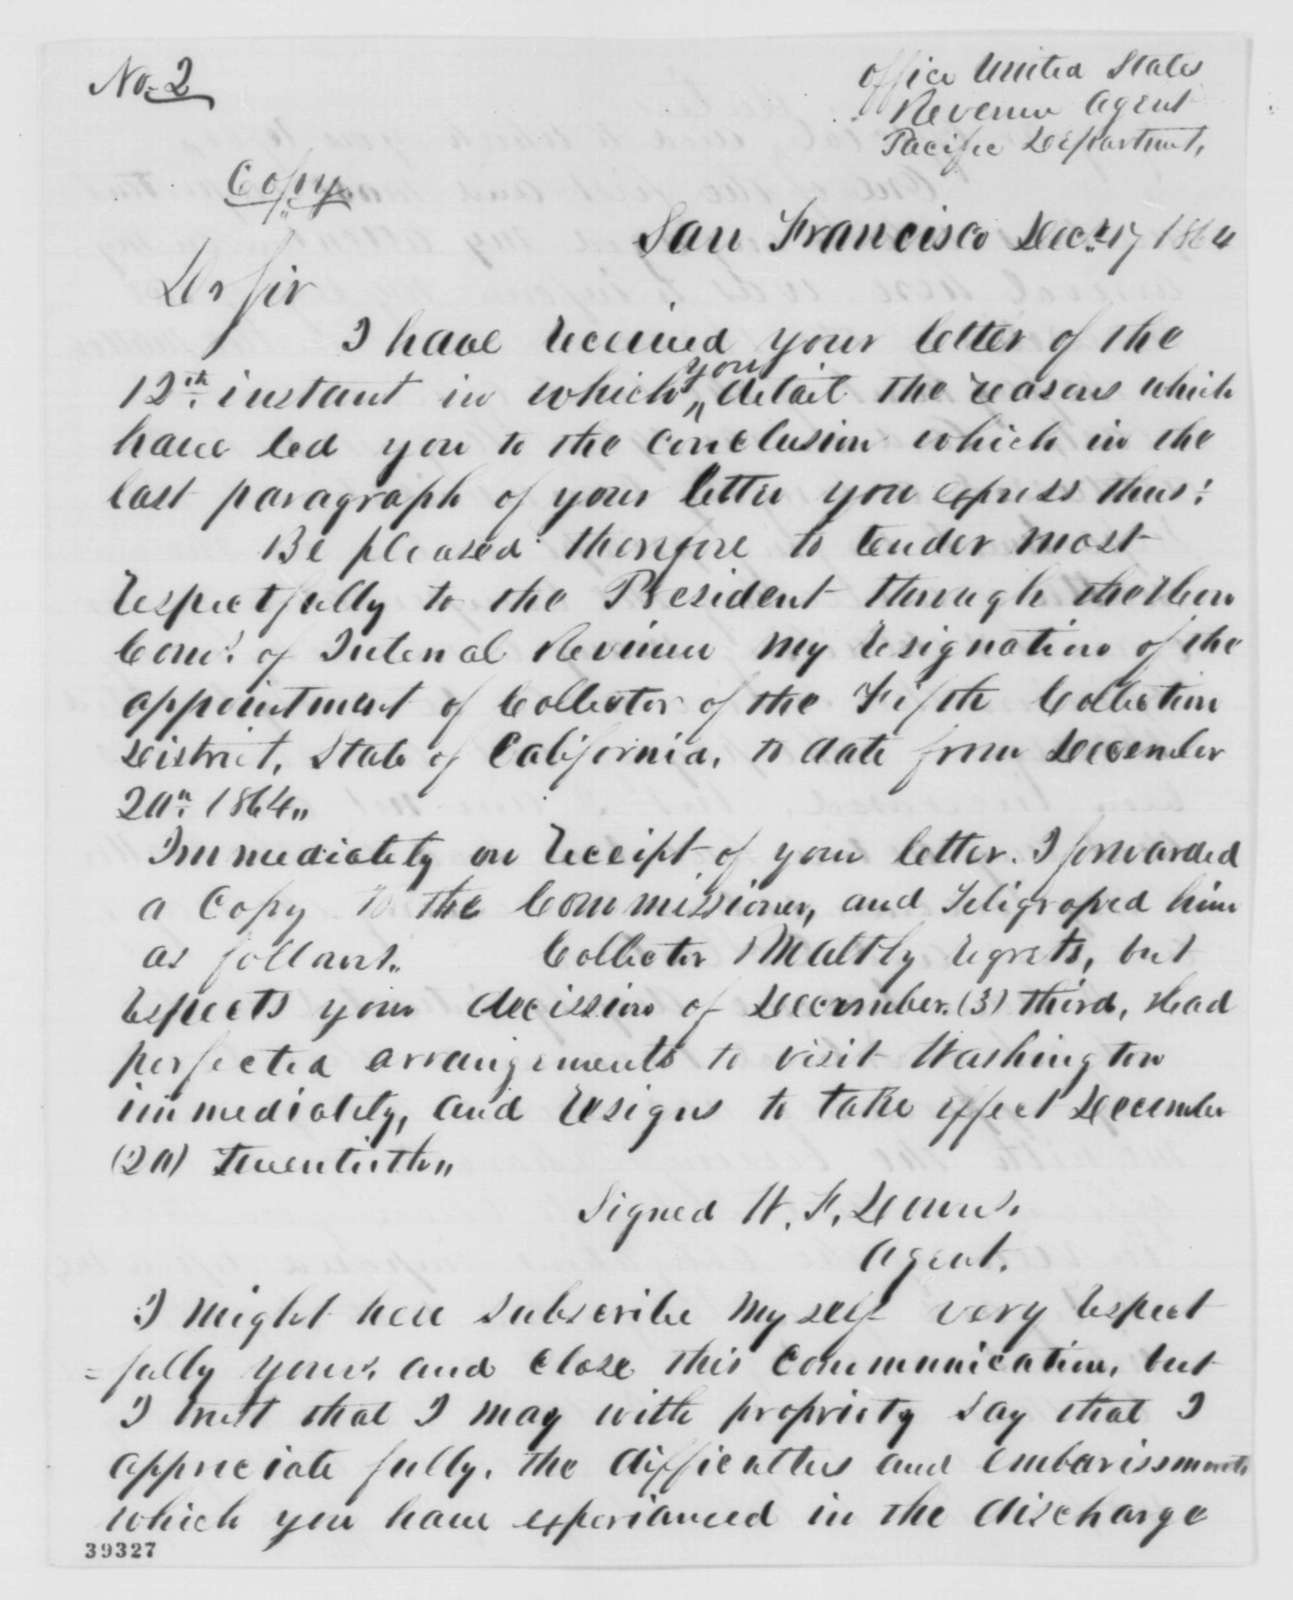 W. F. Downs to Charles Maltby, Saturday, December 17, 1864  (Maltby's resignation)